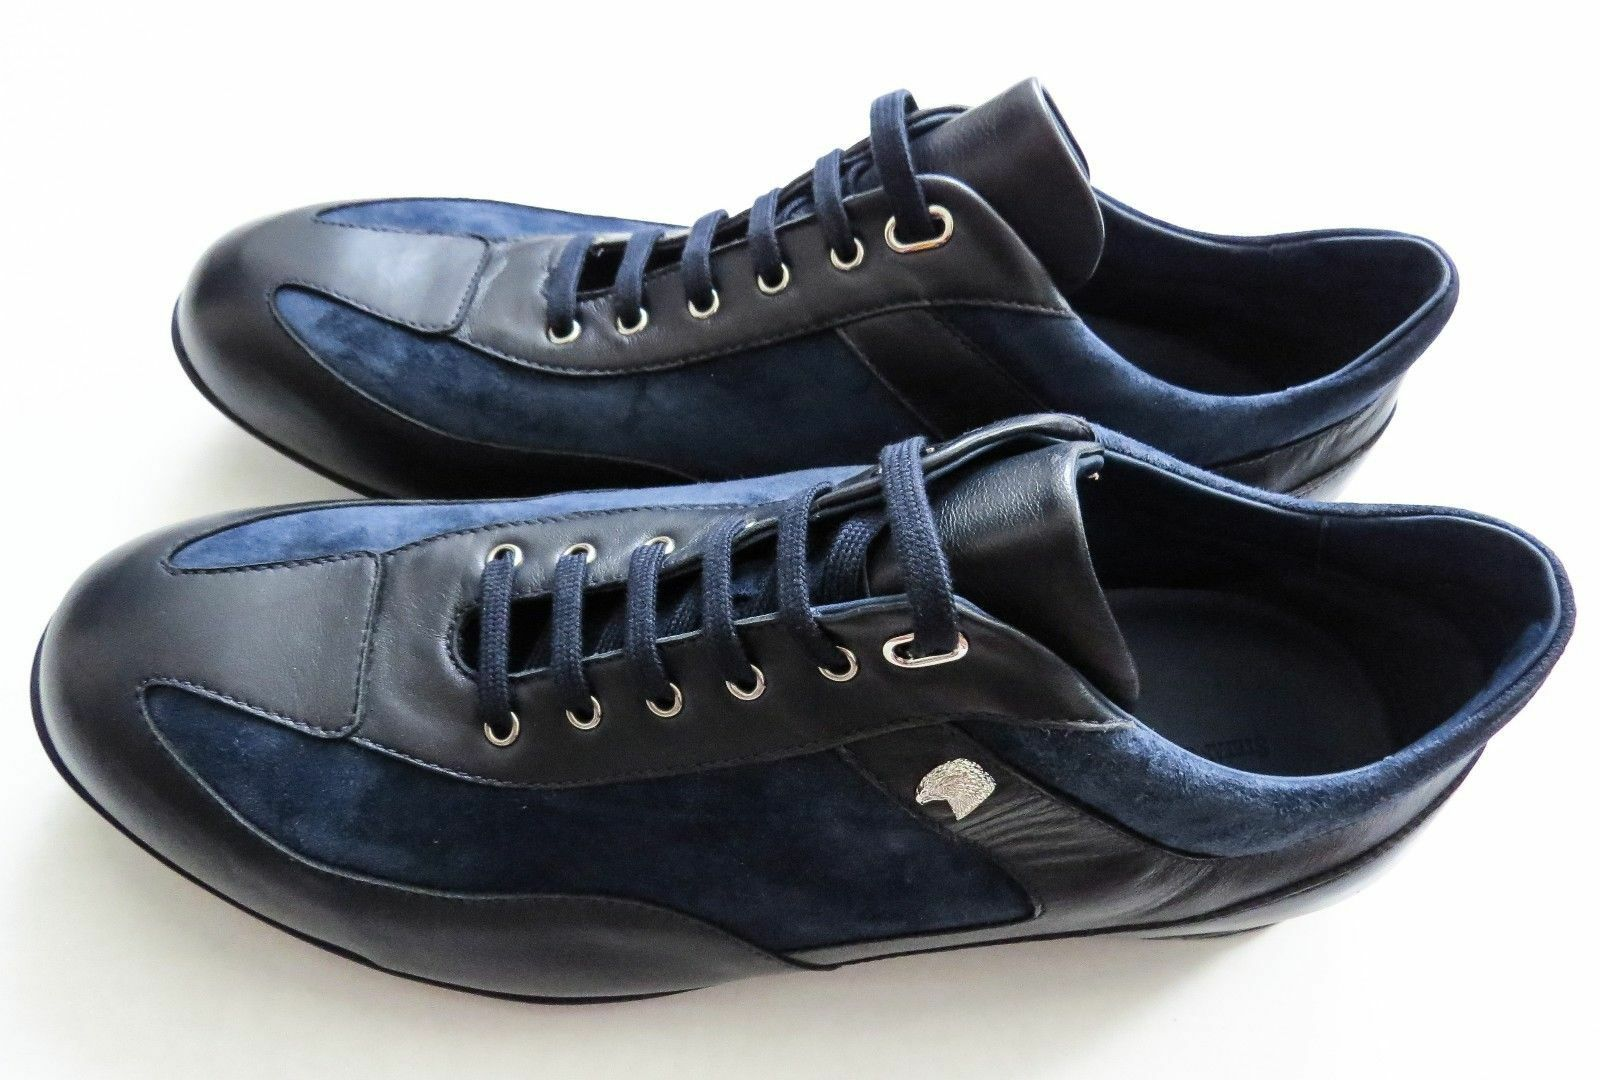 $1640 STEFANO RICCI Blue Leather Suede Sneakers Shoes Size 9 US 42 Euro 8 UK